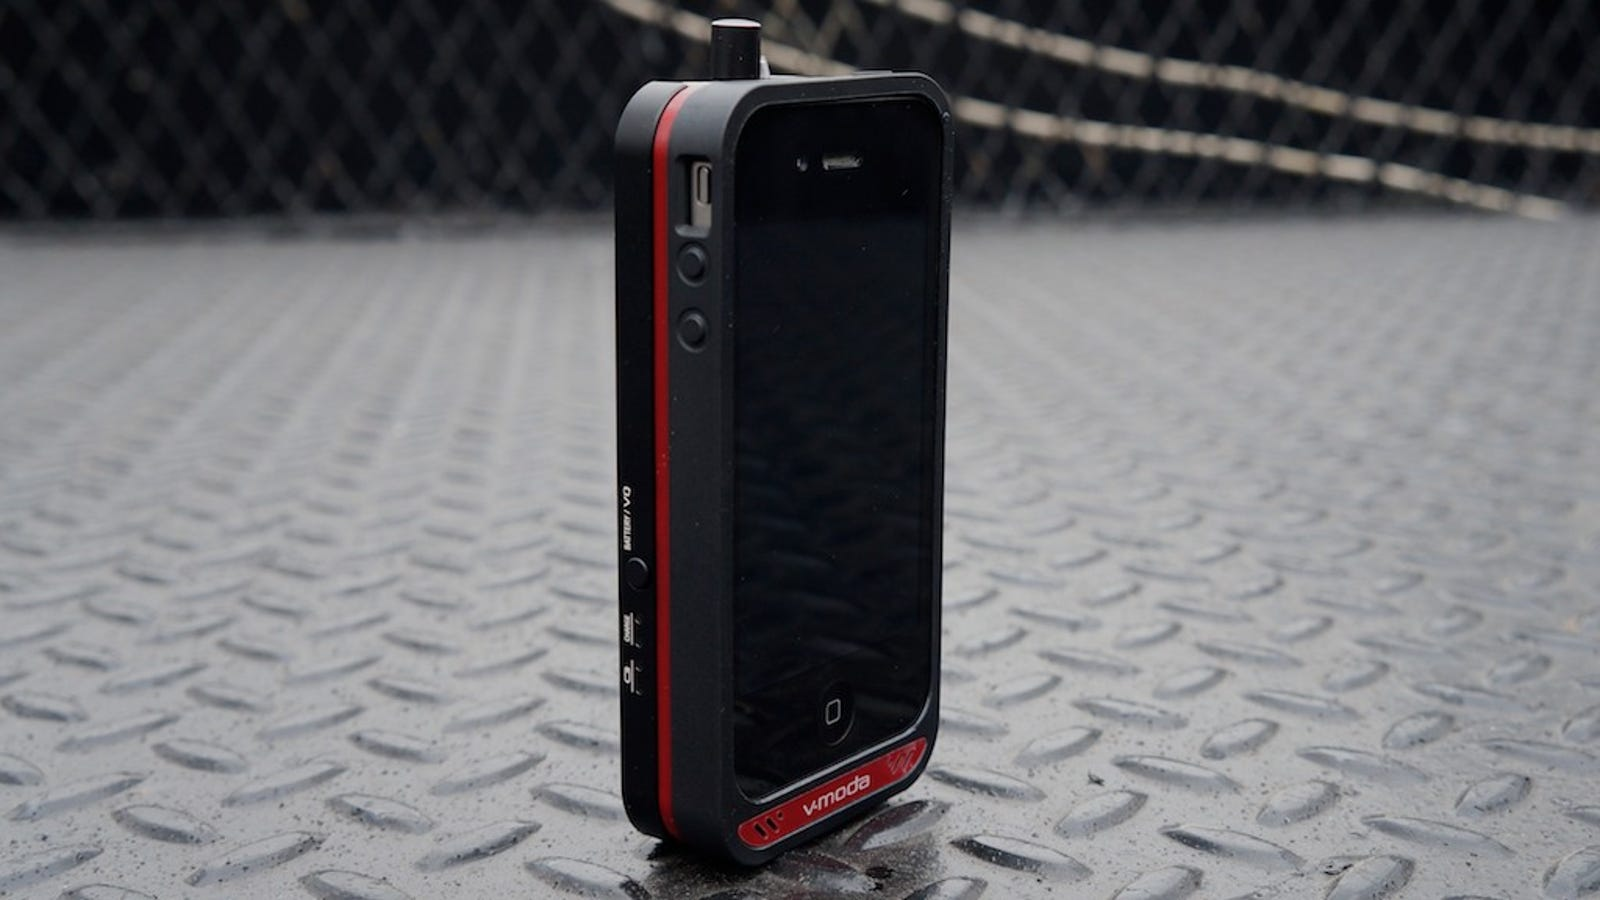 skullcandy earbuds supreme sound - V-Moda Vamp Packs a Headphone Amp and DAC Into an iPhone Case to Make Your Music Sing